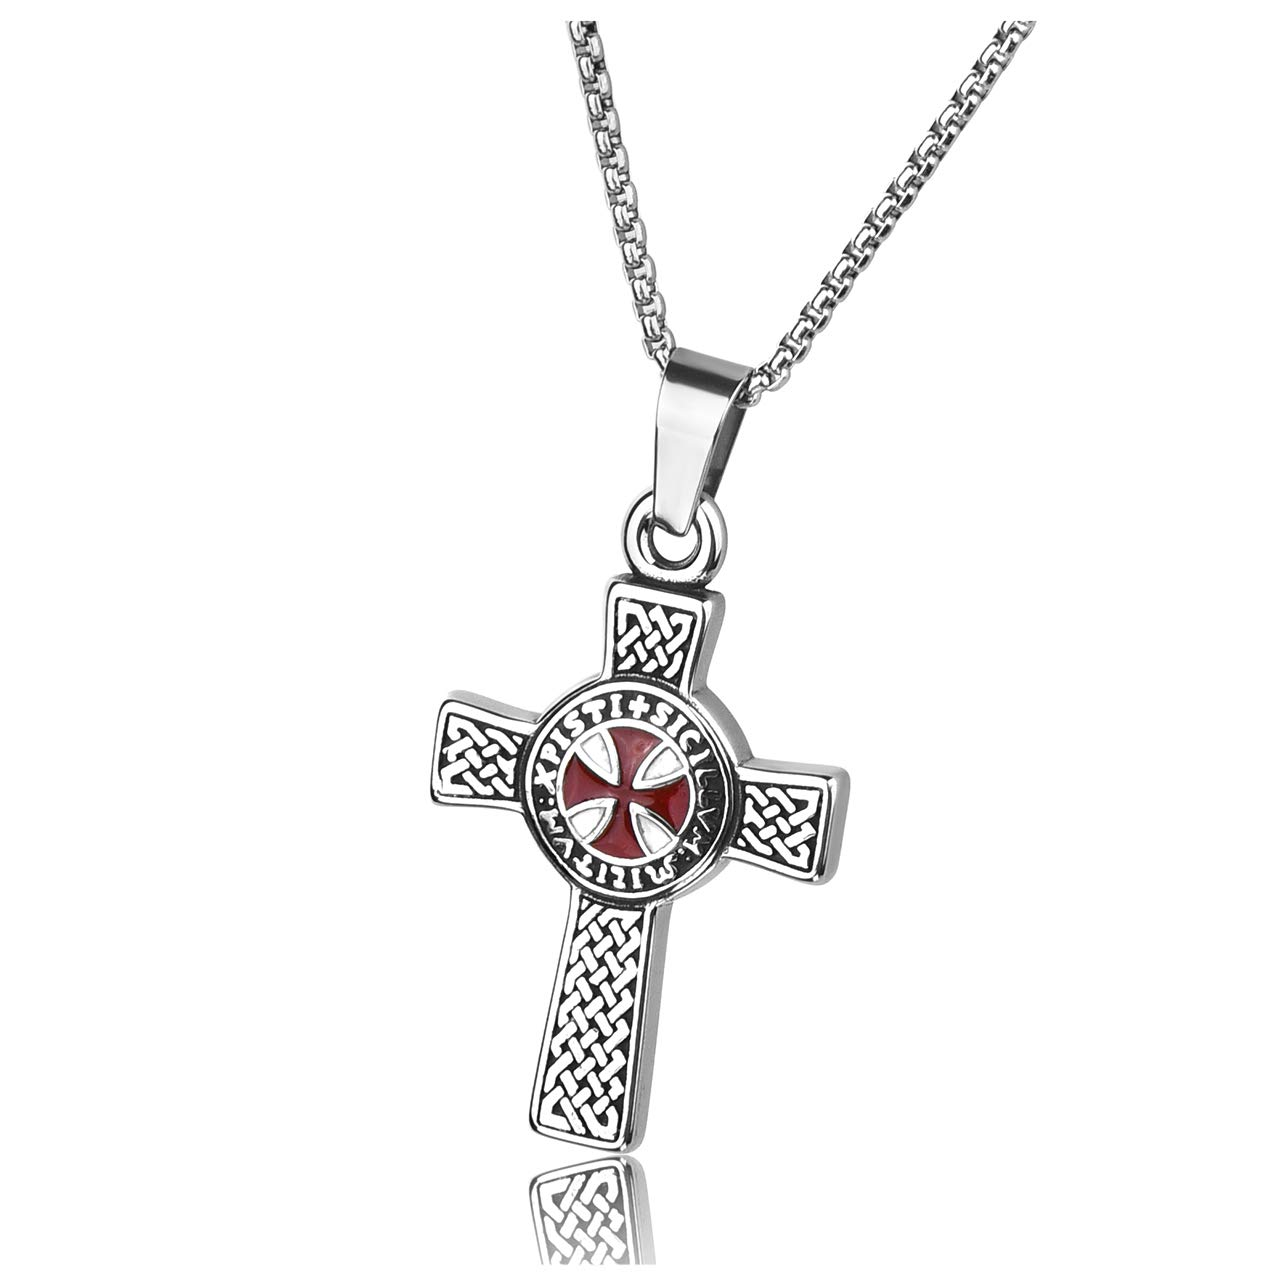 Stainless Steel Knights Templar Cross Sturdy Women Men's Pendant Necklace with 24 inches Chain Link